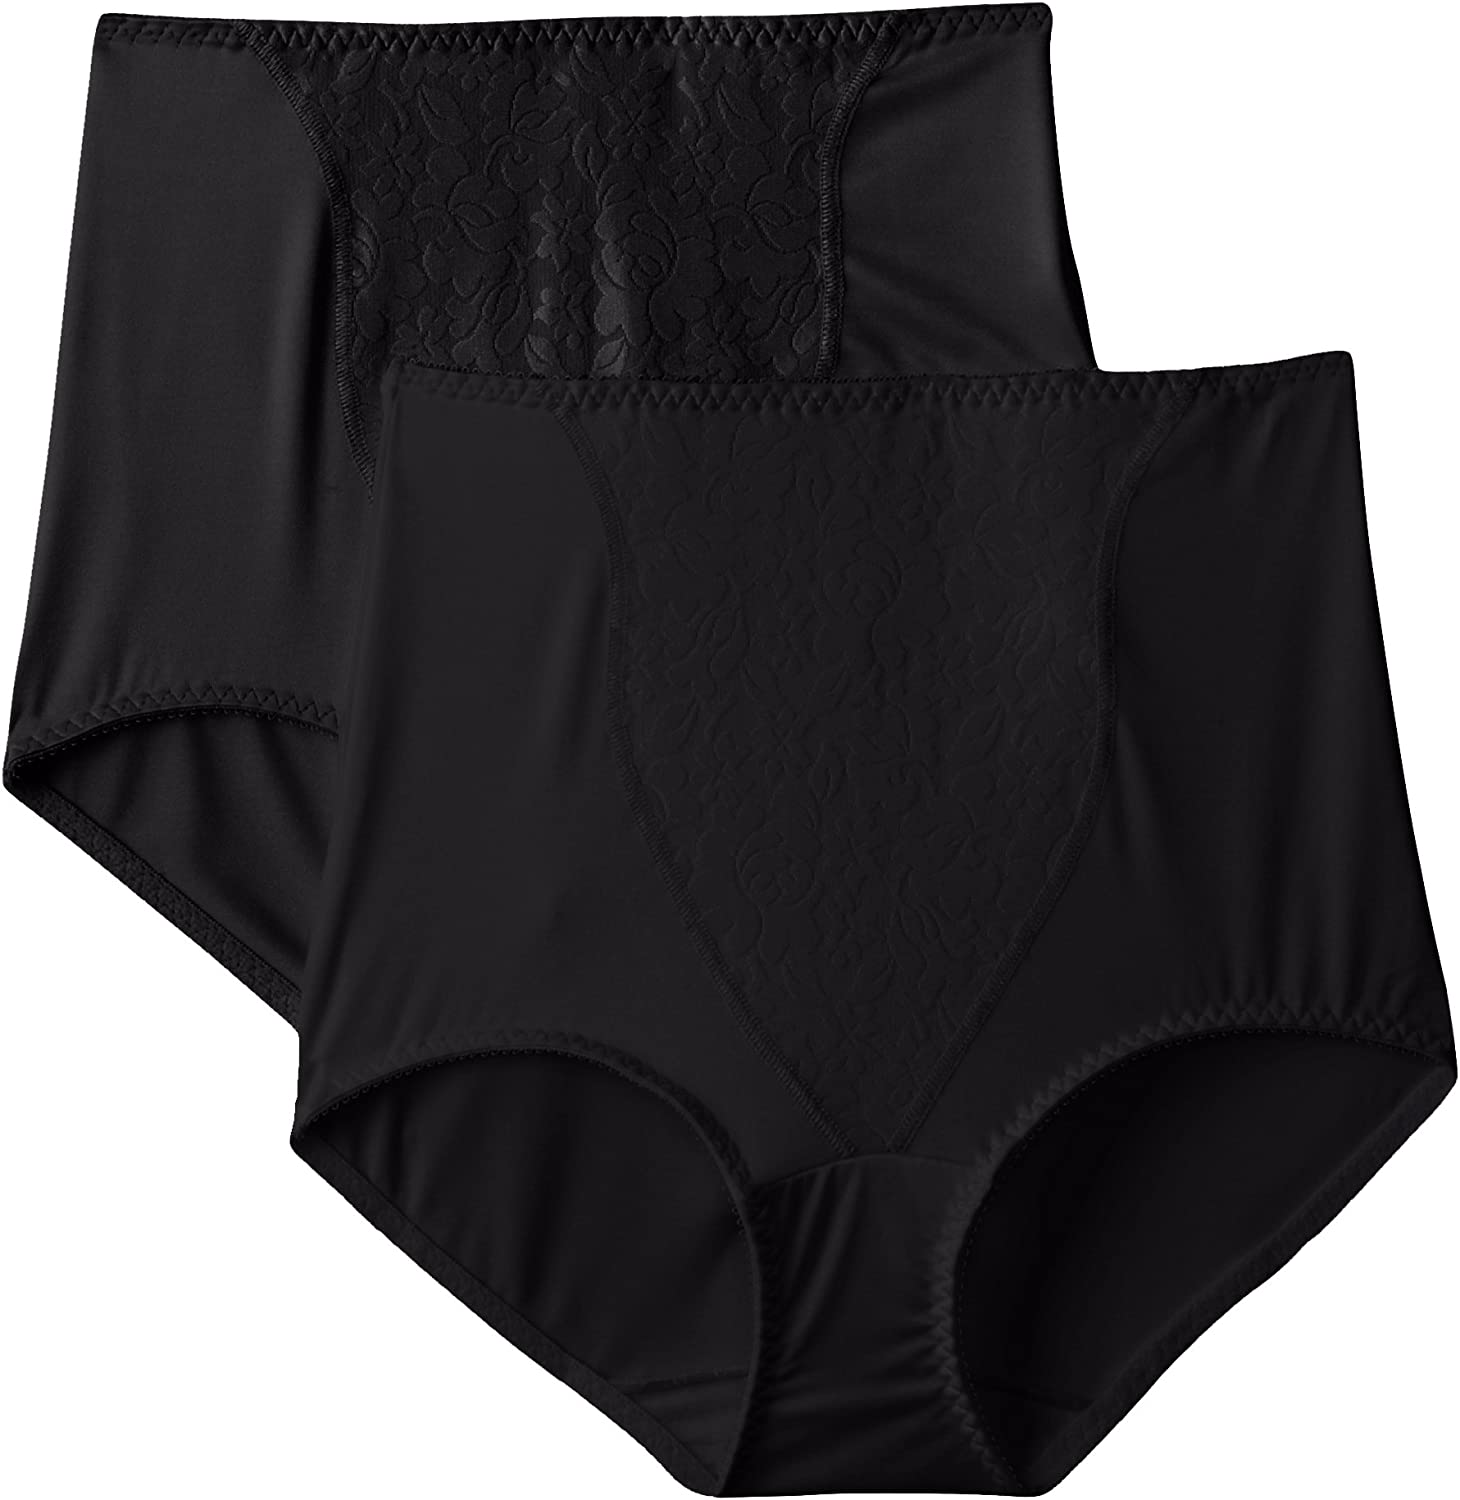 Bali Ultra Light Firm Control Tummy Solutions Sheer Lace Brief Panties 2X//9 Blac